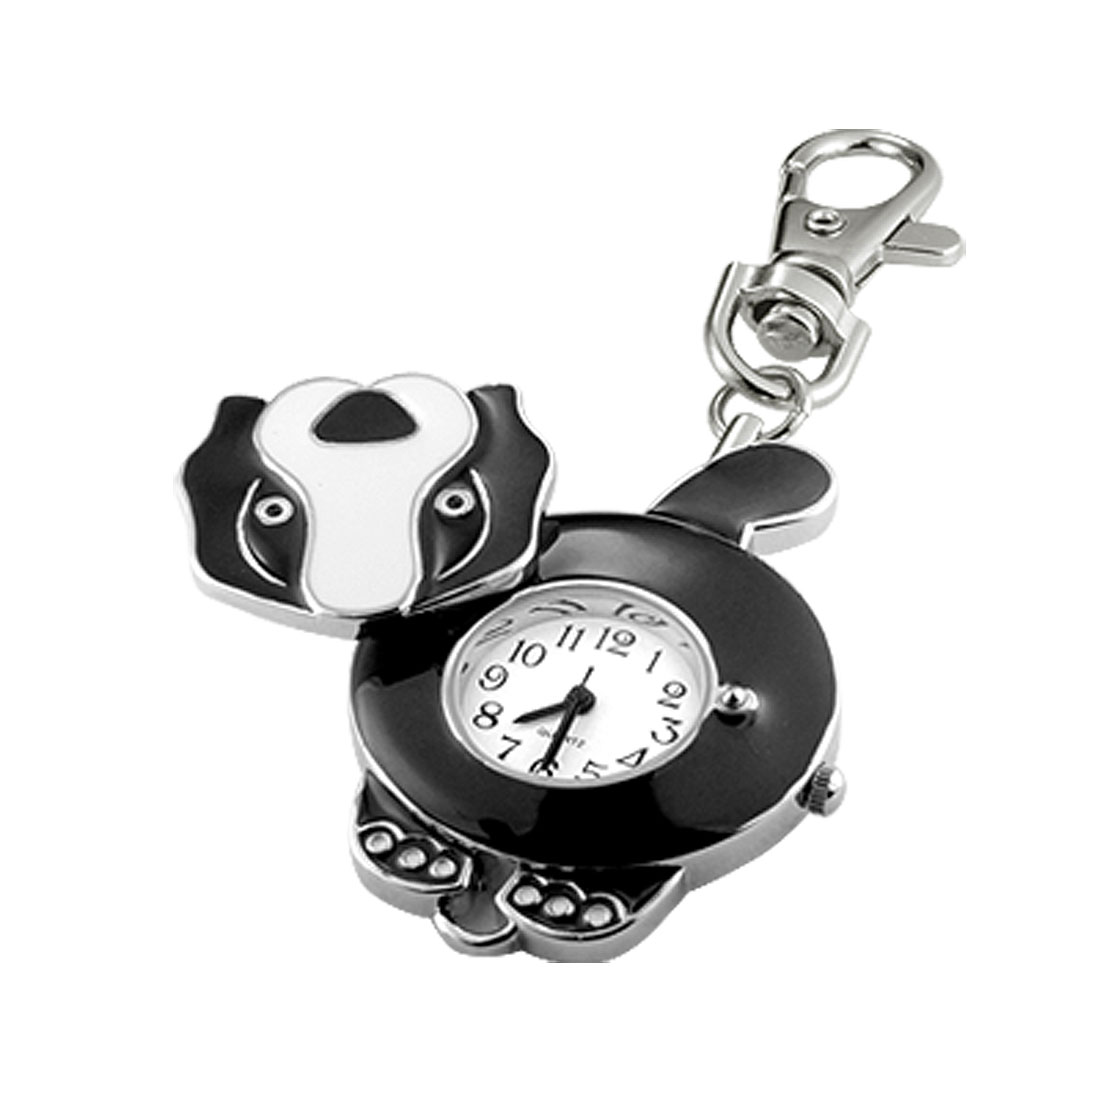 Cute Black Dog Shaped Key Chain Clip Watch